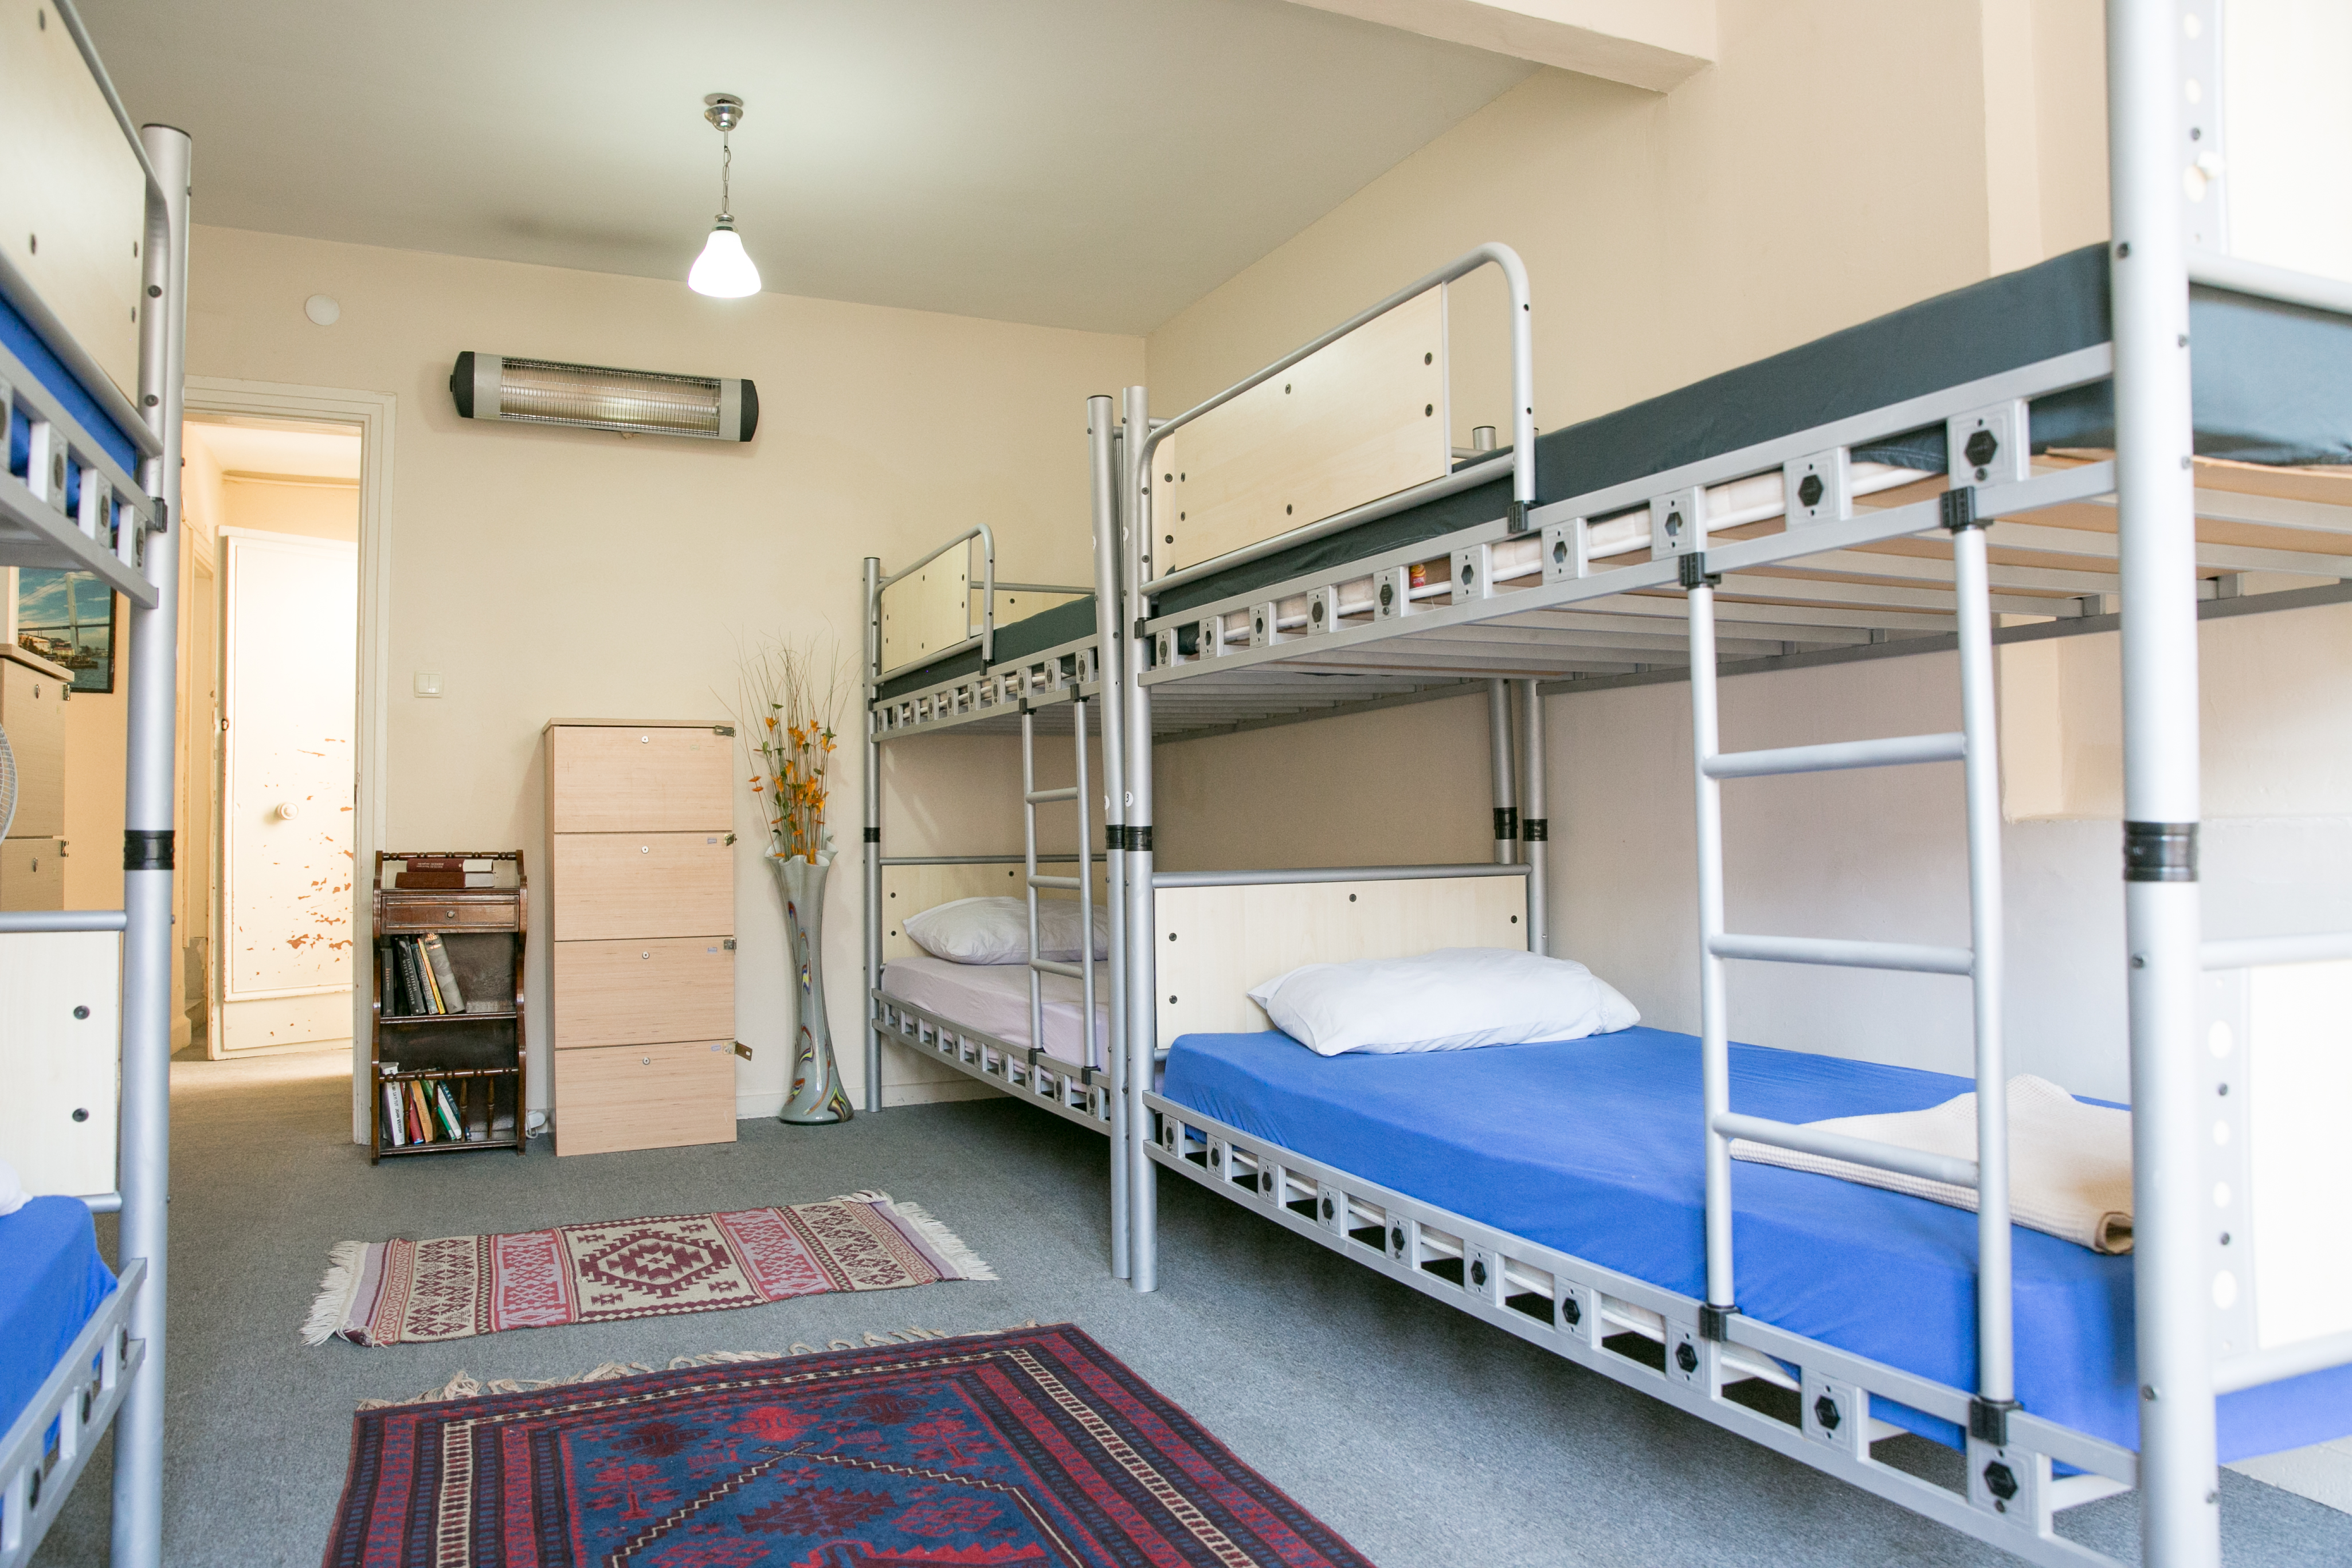 Levanten Hostel